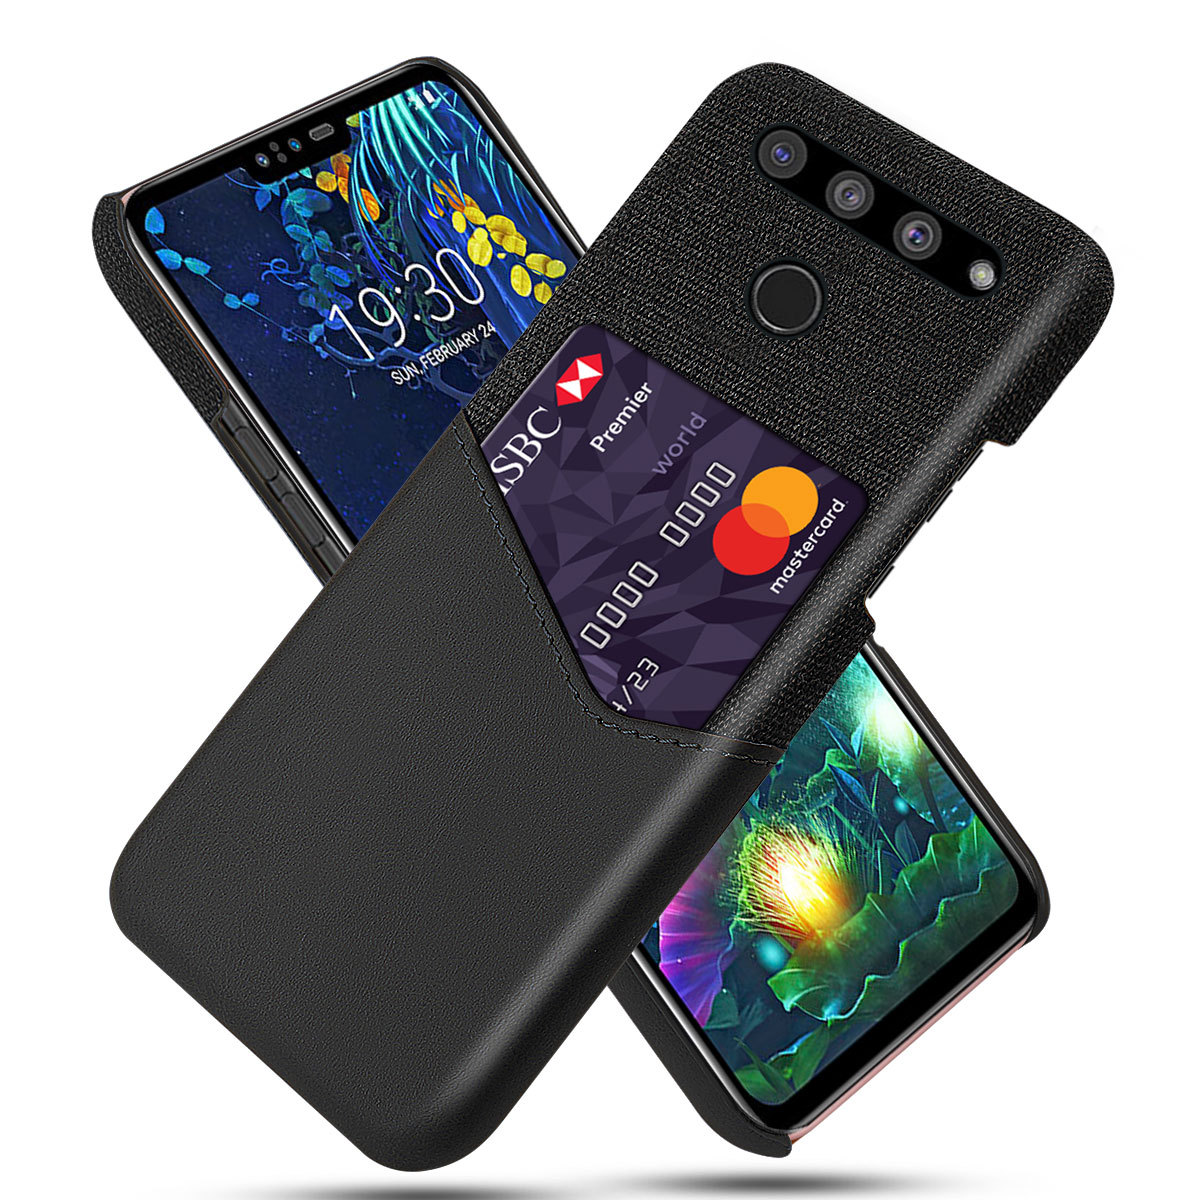 DCK Leather Hard Cloth With <font><b>Card</b></font> Protective Phone <font><b>Cases</b></font> for <font><b>LG</b></font> V50 ThinQ V40 <font><b>V30</b></font> V20 V10 Slim Hybrid Hard Platic Phone Cover image